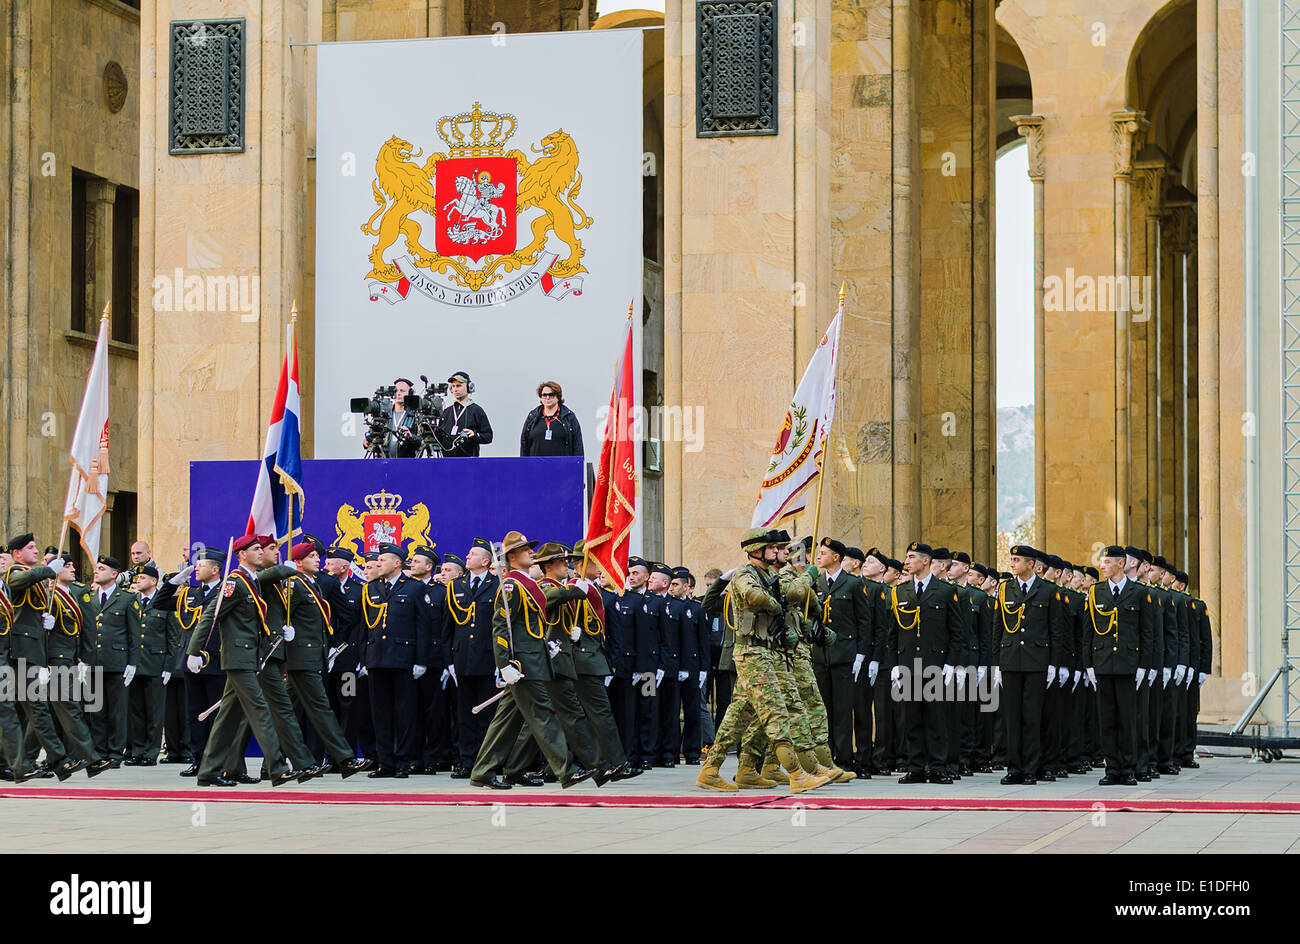 marching soldiers in the ceremonies anauguratsy the President of Georgia - Stock Image